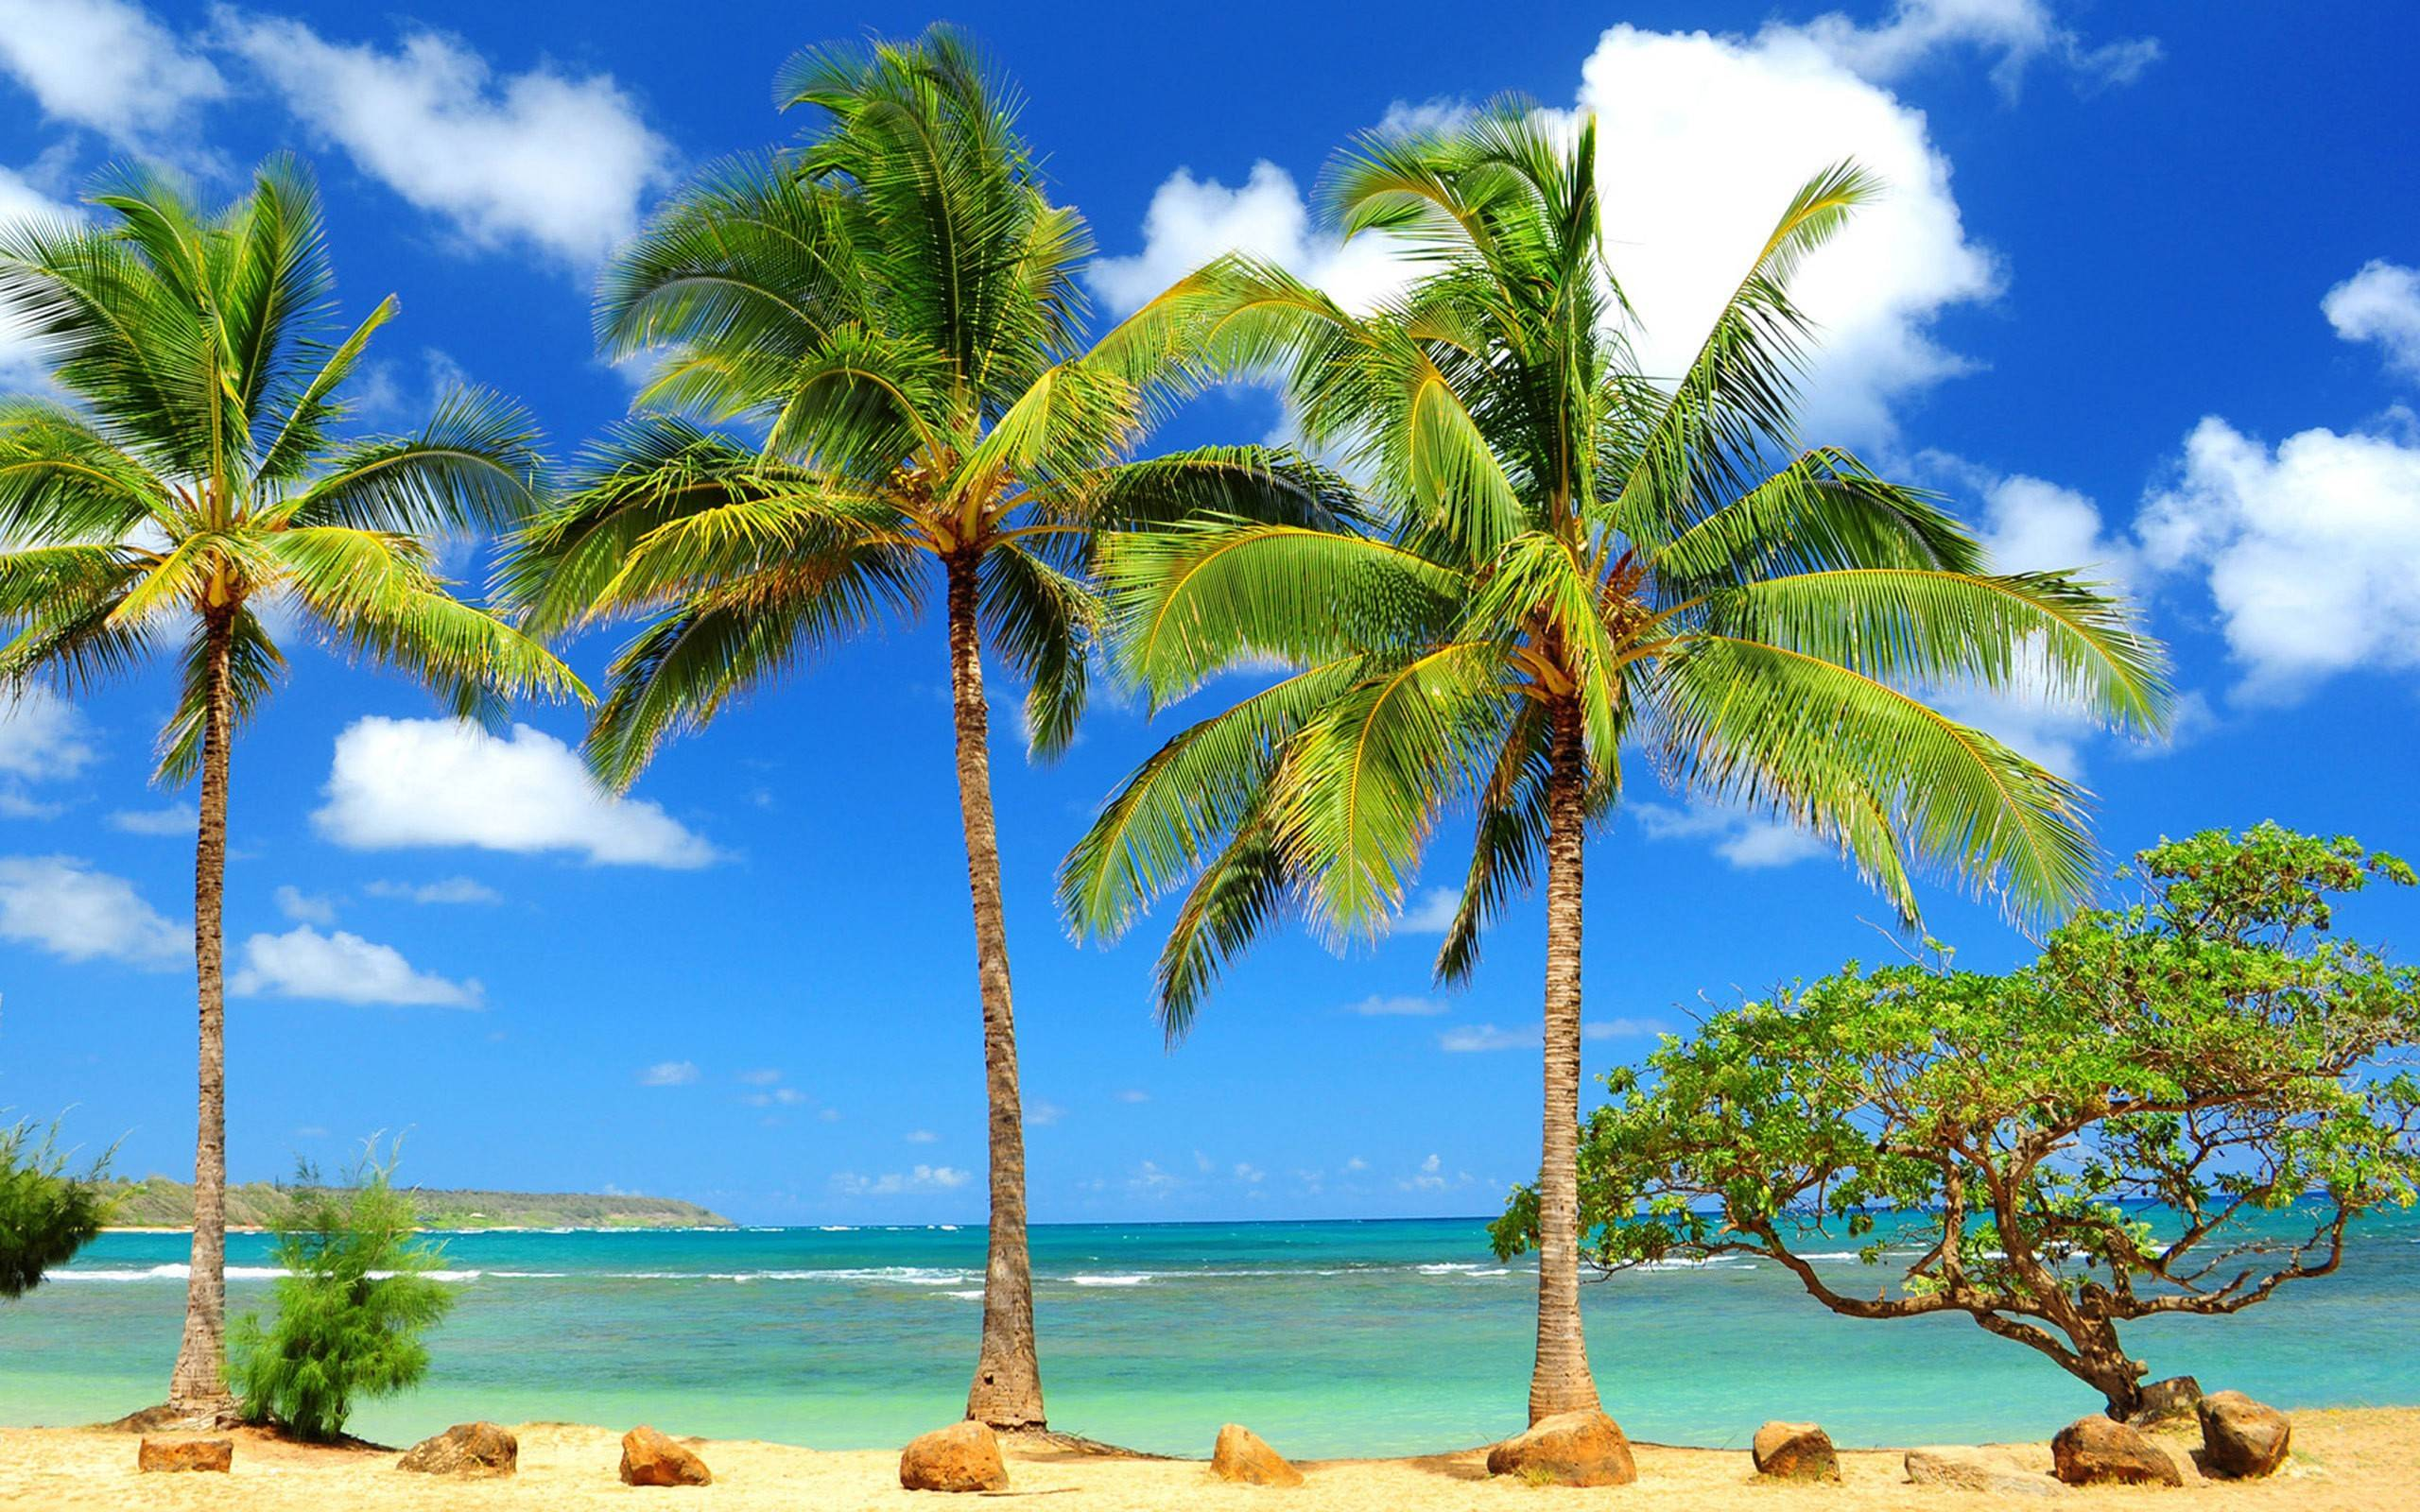 beach palm tree hd wallpaper free download hd free wallpapers